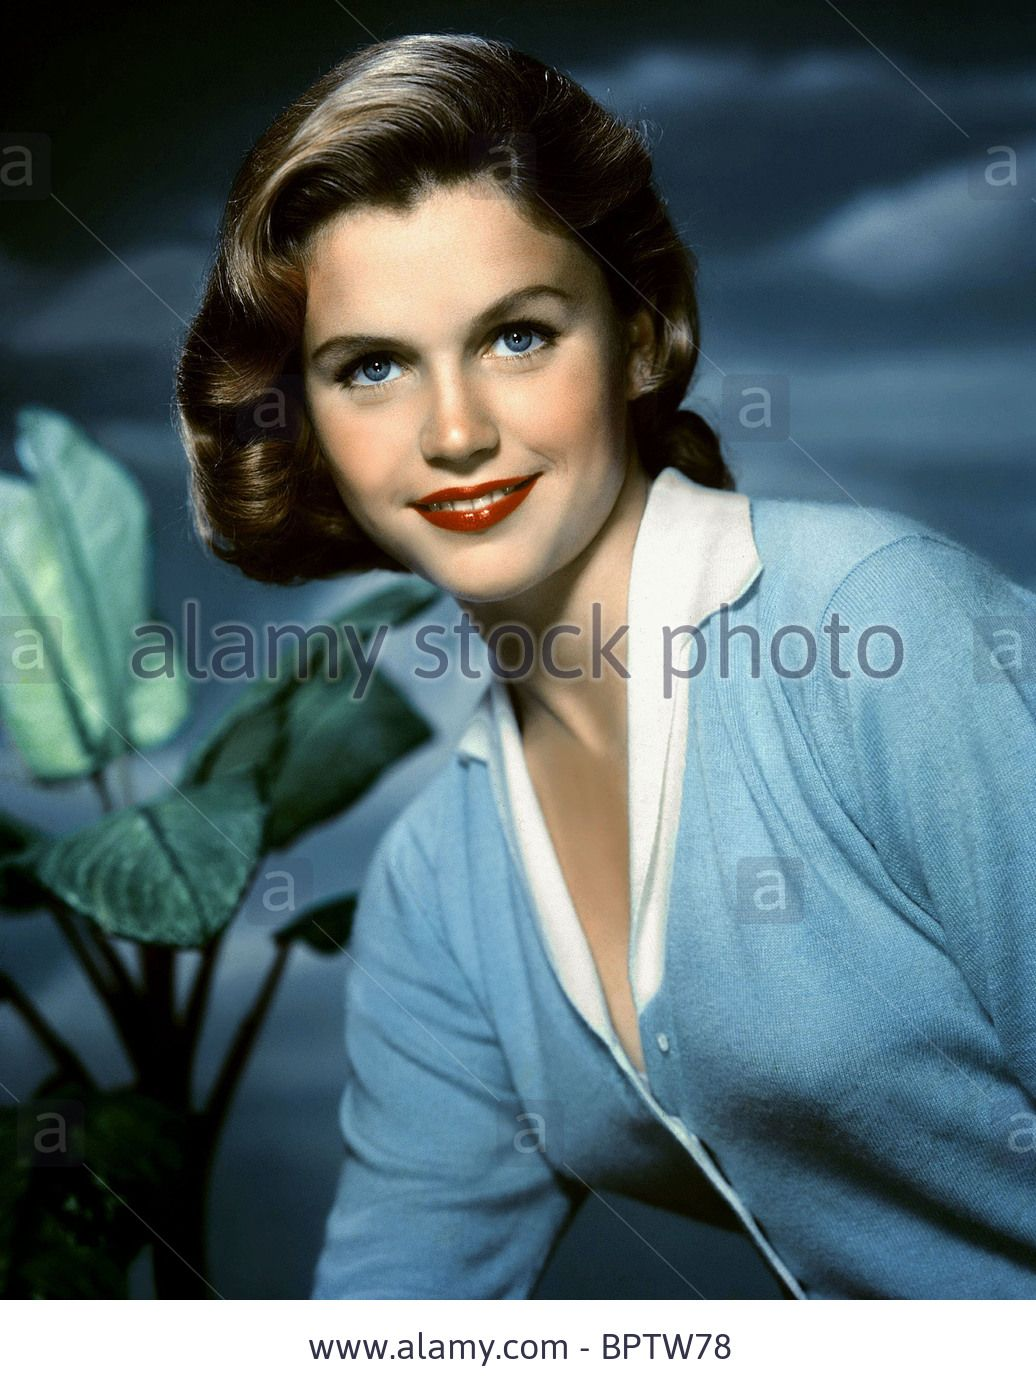 lee remick last photolee remick height, lee remick, lee remick photos, lee remick actress, lee remick cancer, lee remick 1991, lee remick biography, lee remick grave, lee remick go betweens, lee remick the omen, lee remick pictures, lee remick death, lee remick imdb, lee remick estate, lee remick daughter, lee remick net worth, lee remick find a grave, lee remick death picture, lee remick measurements, lee remick last photo